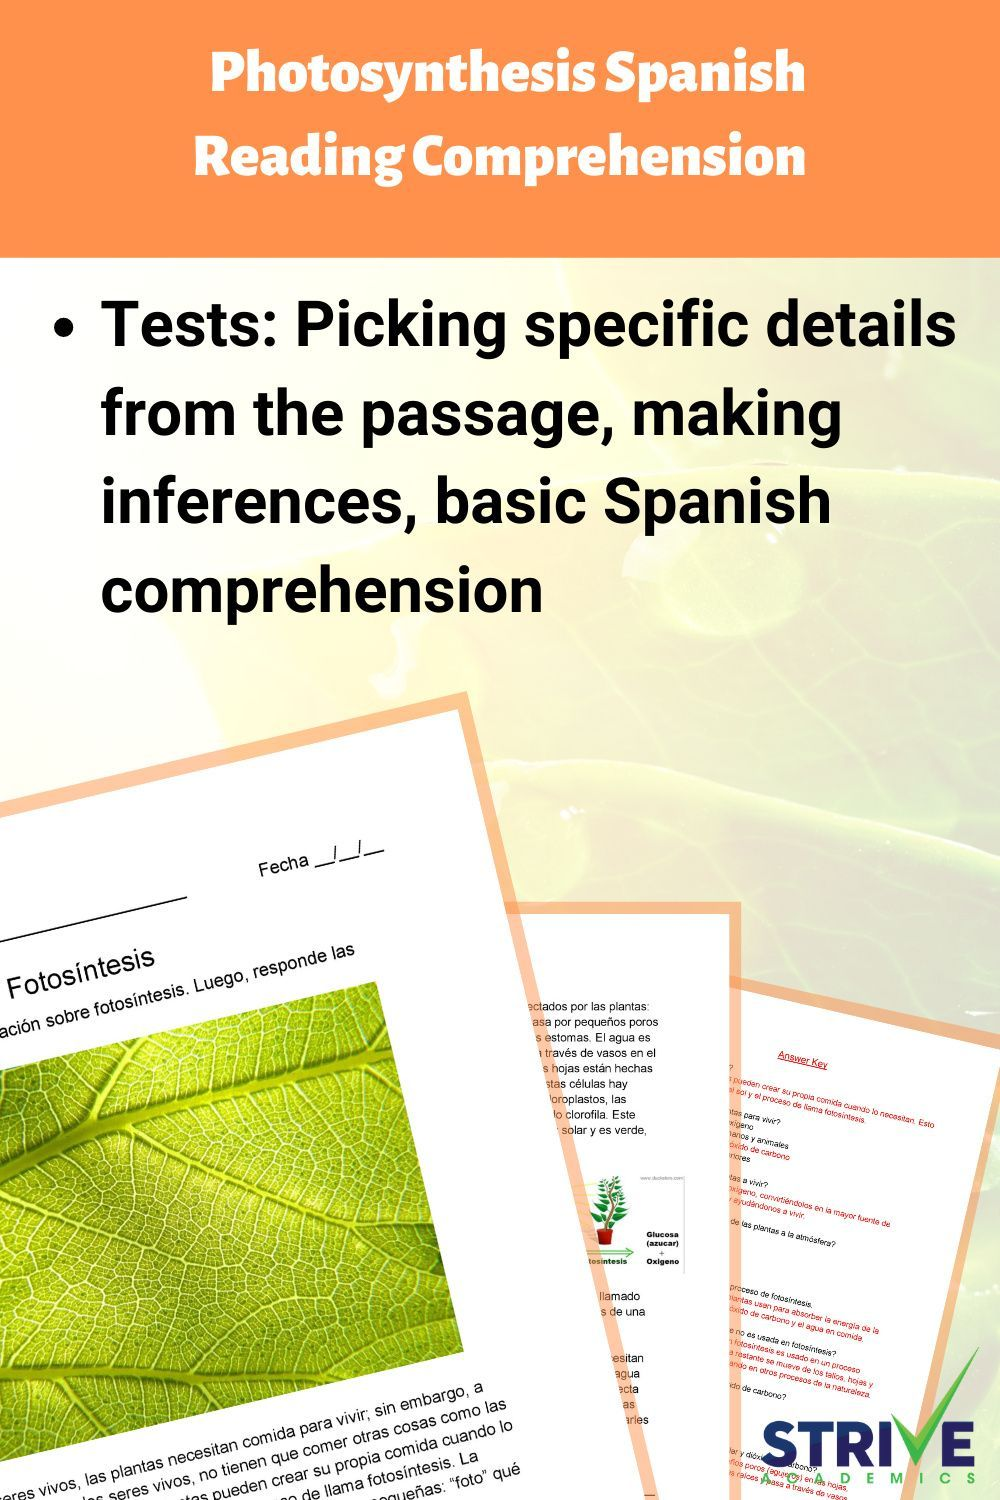 Photosynthesis Spanish Reading Comprehension Worksheet Reading Comprehension Spanish Reading Comprehension Reading Comprehension Worksheets [ 1500 x 1000 Pixel ]